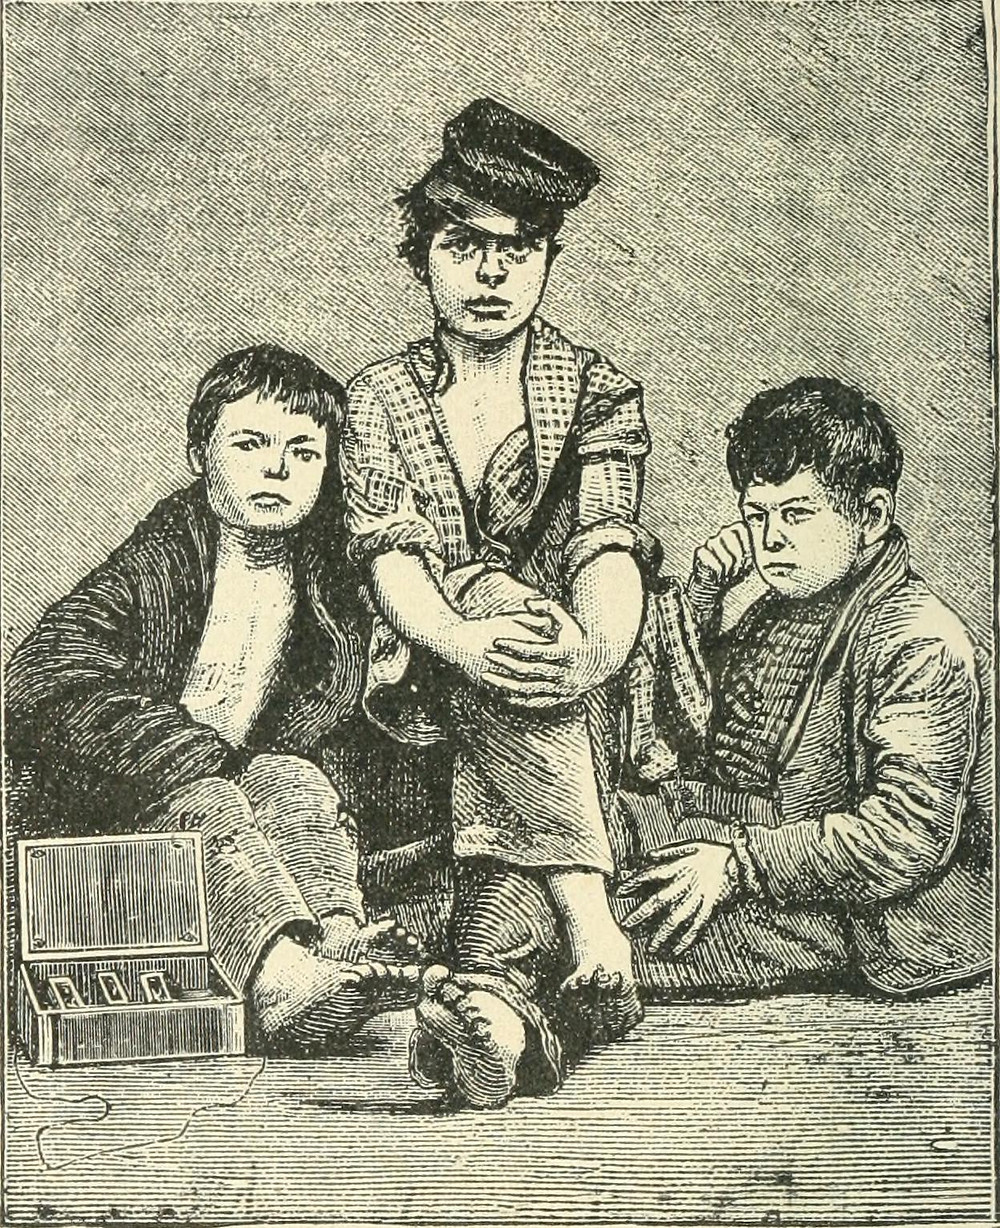 Needham, George C. Street Arabs and Gutter Snipes. Boston: D. L. Guernsey, 1884. Page 98.